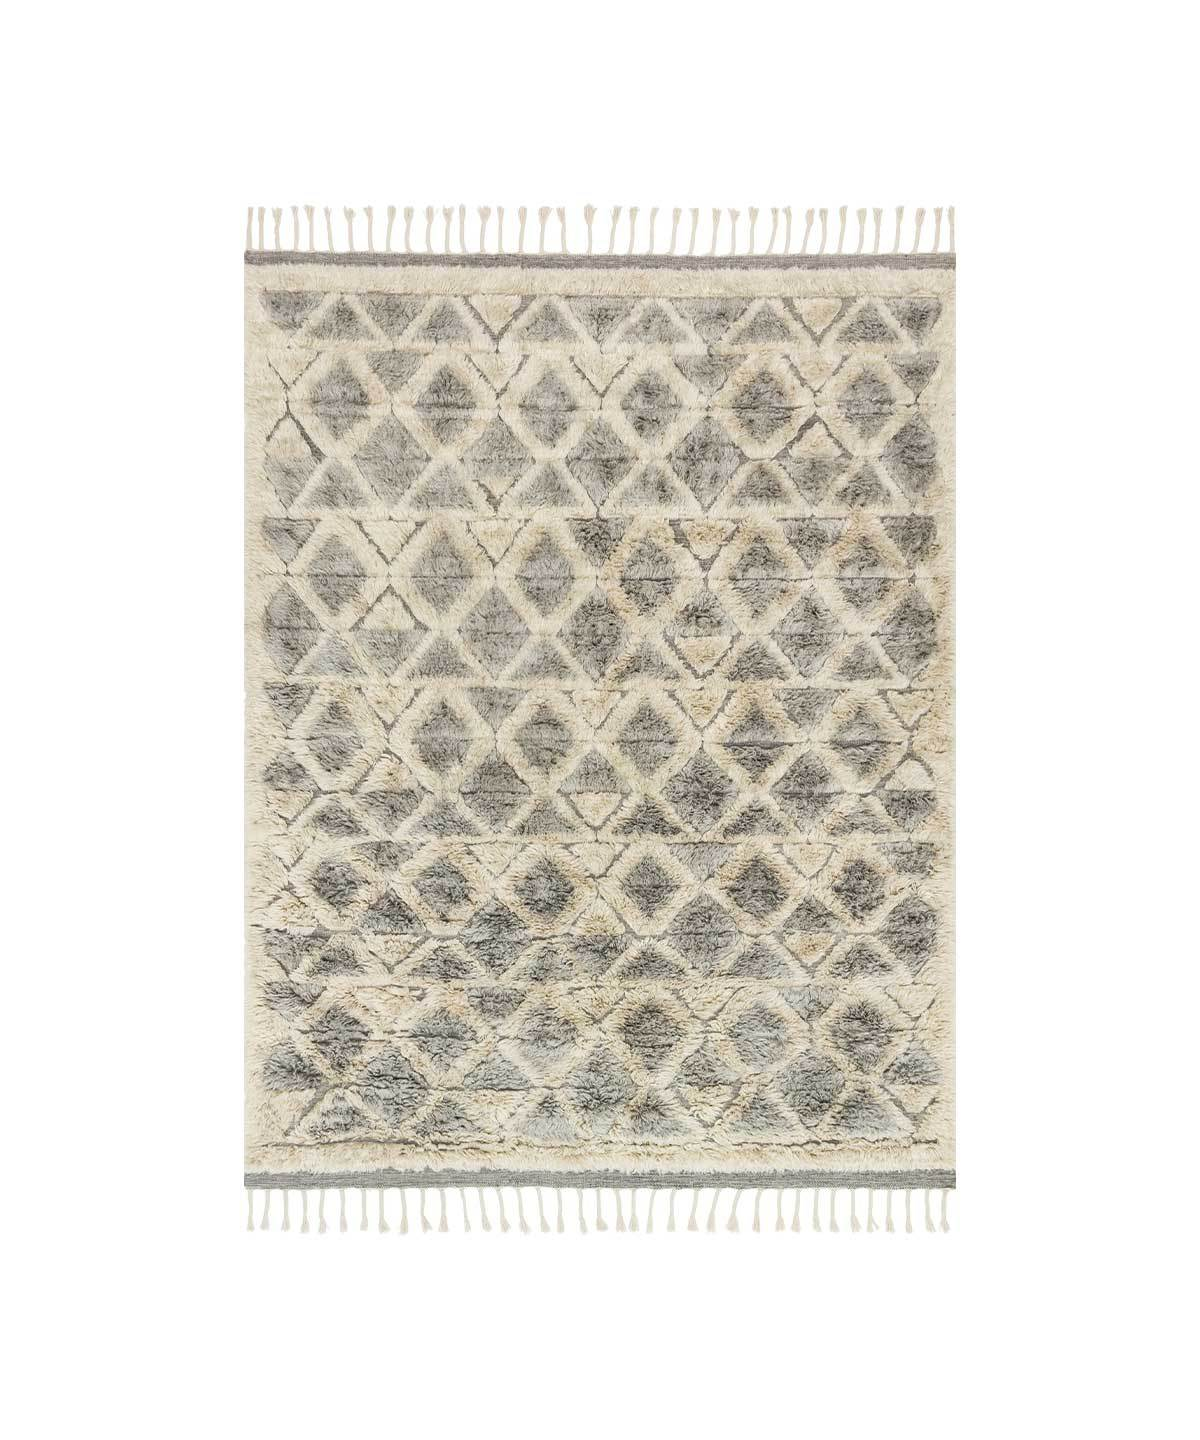 Hygge Rug in Smoke / Taupe by Loloi | TRNK